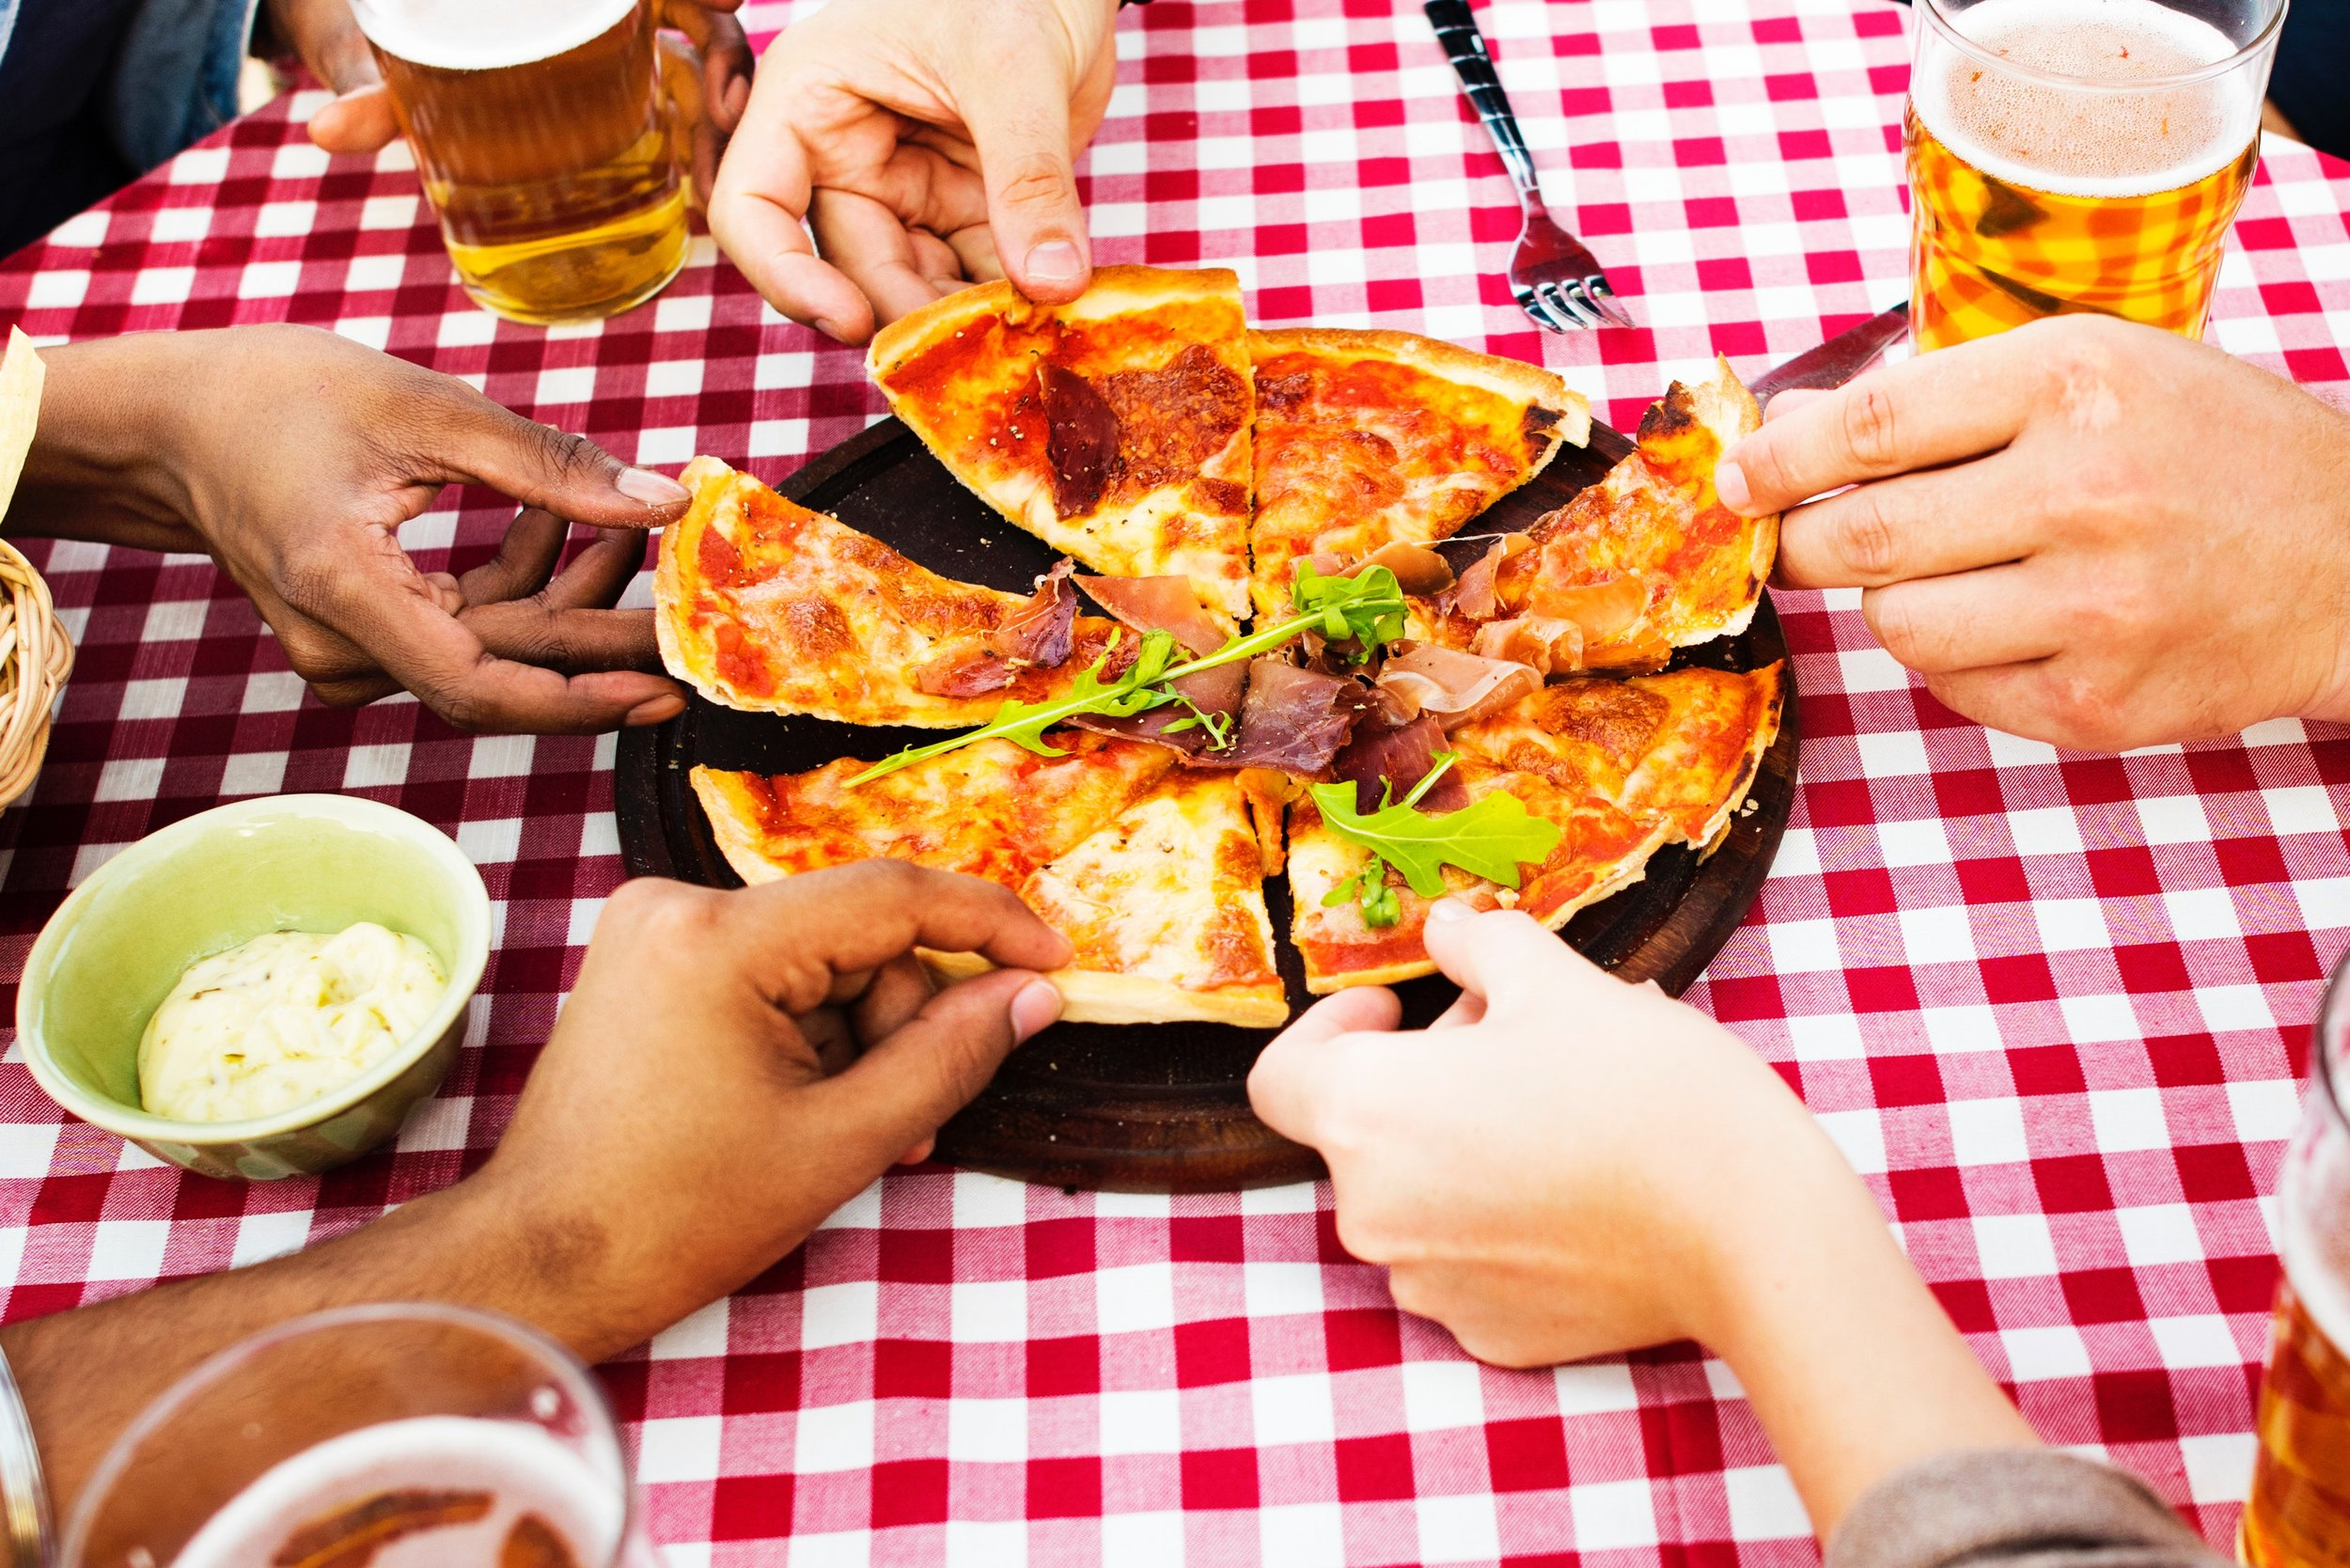 FRIDAY EVENING SOCIALS   Come and have some fun, join us for a meal, meet new people, make friends and share the love that resonates in our Church.